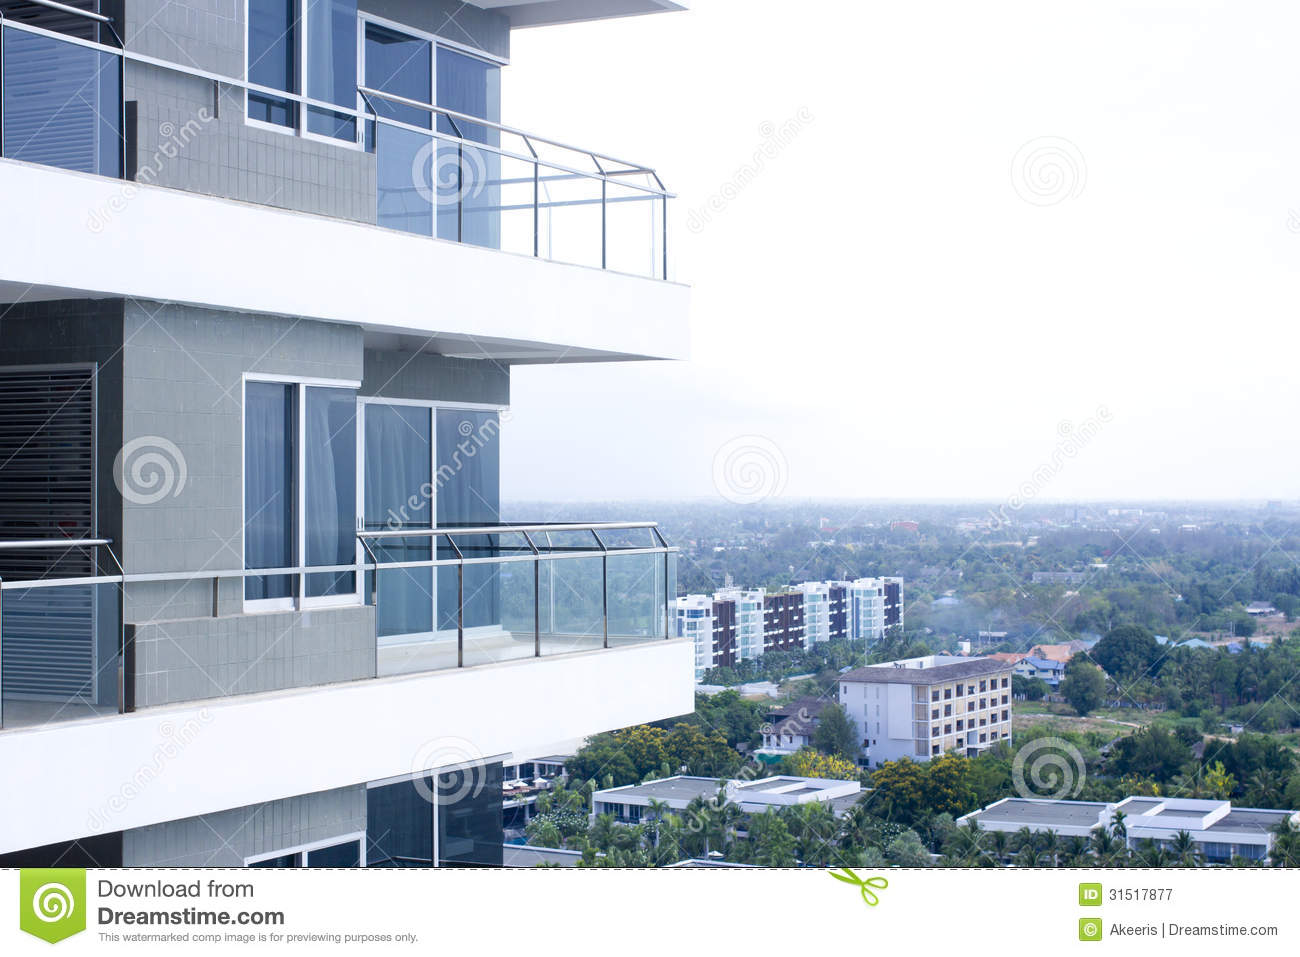 Building balcony royalty free stock photography image for Building balcony